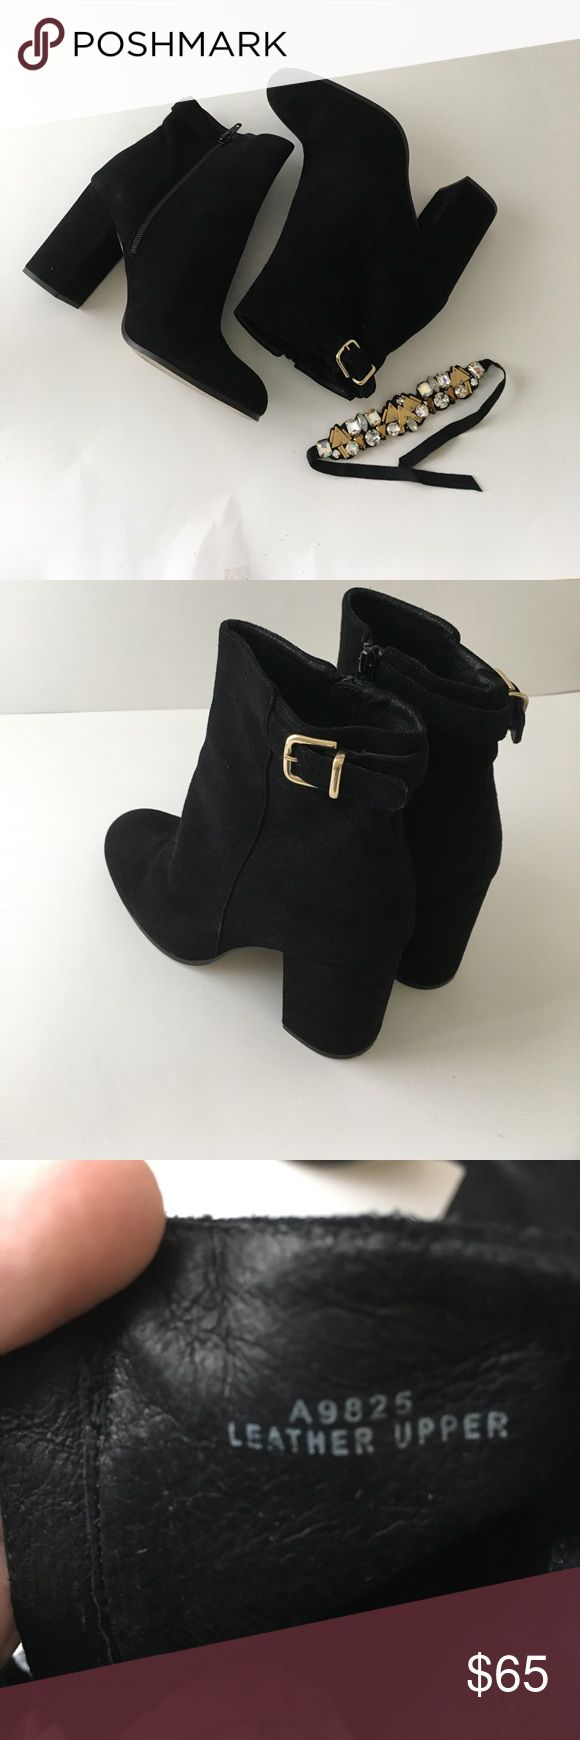 J crew ankle boots Black ankle boots size 8 J. Crew Shoes Over the Knee Boots